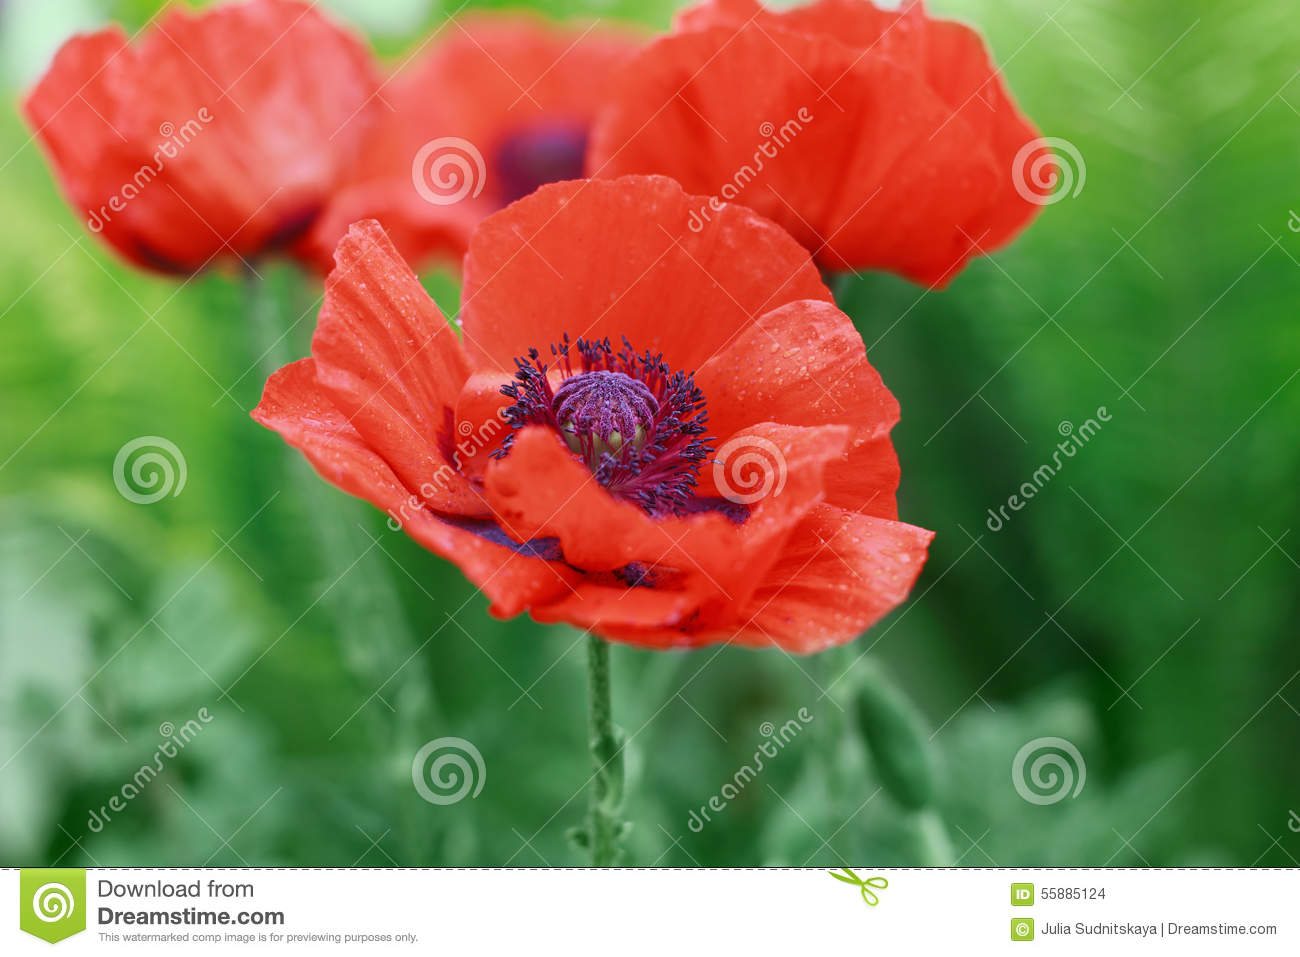 suggestions online images of red poppy veterans day